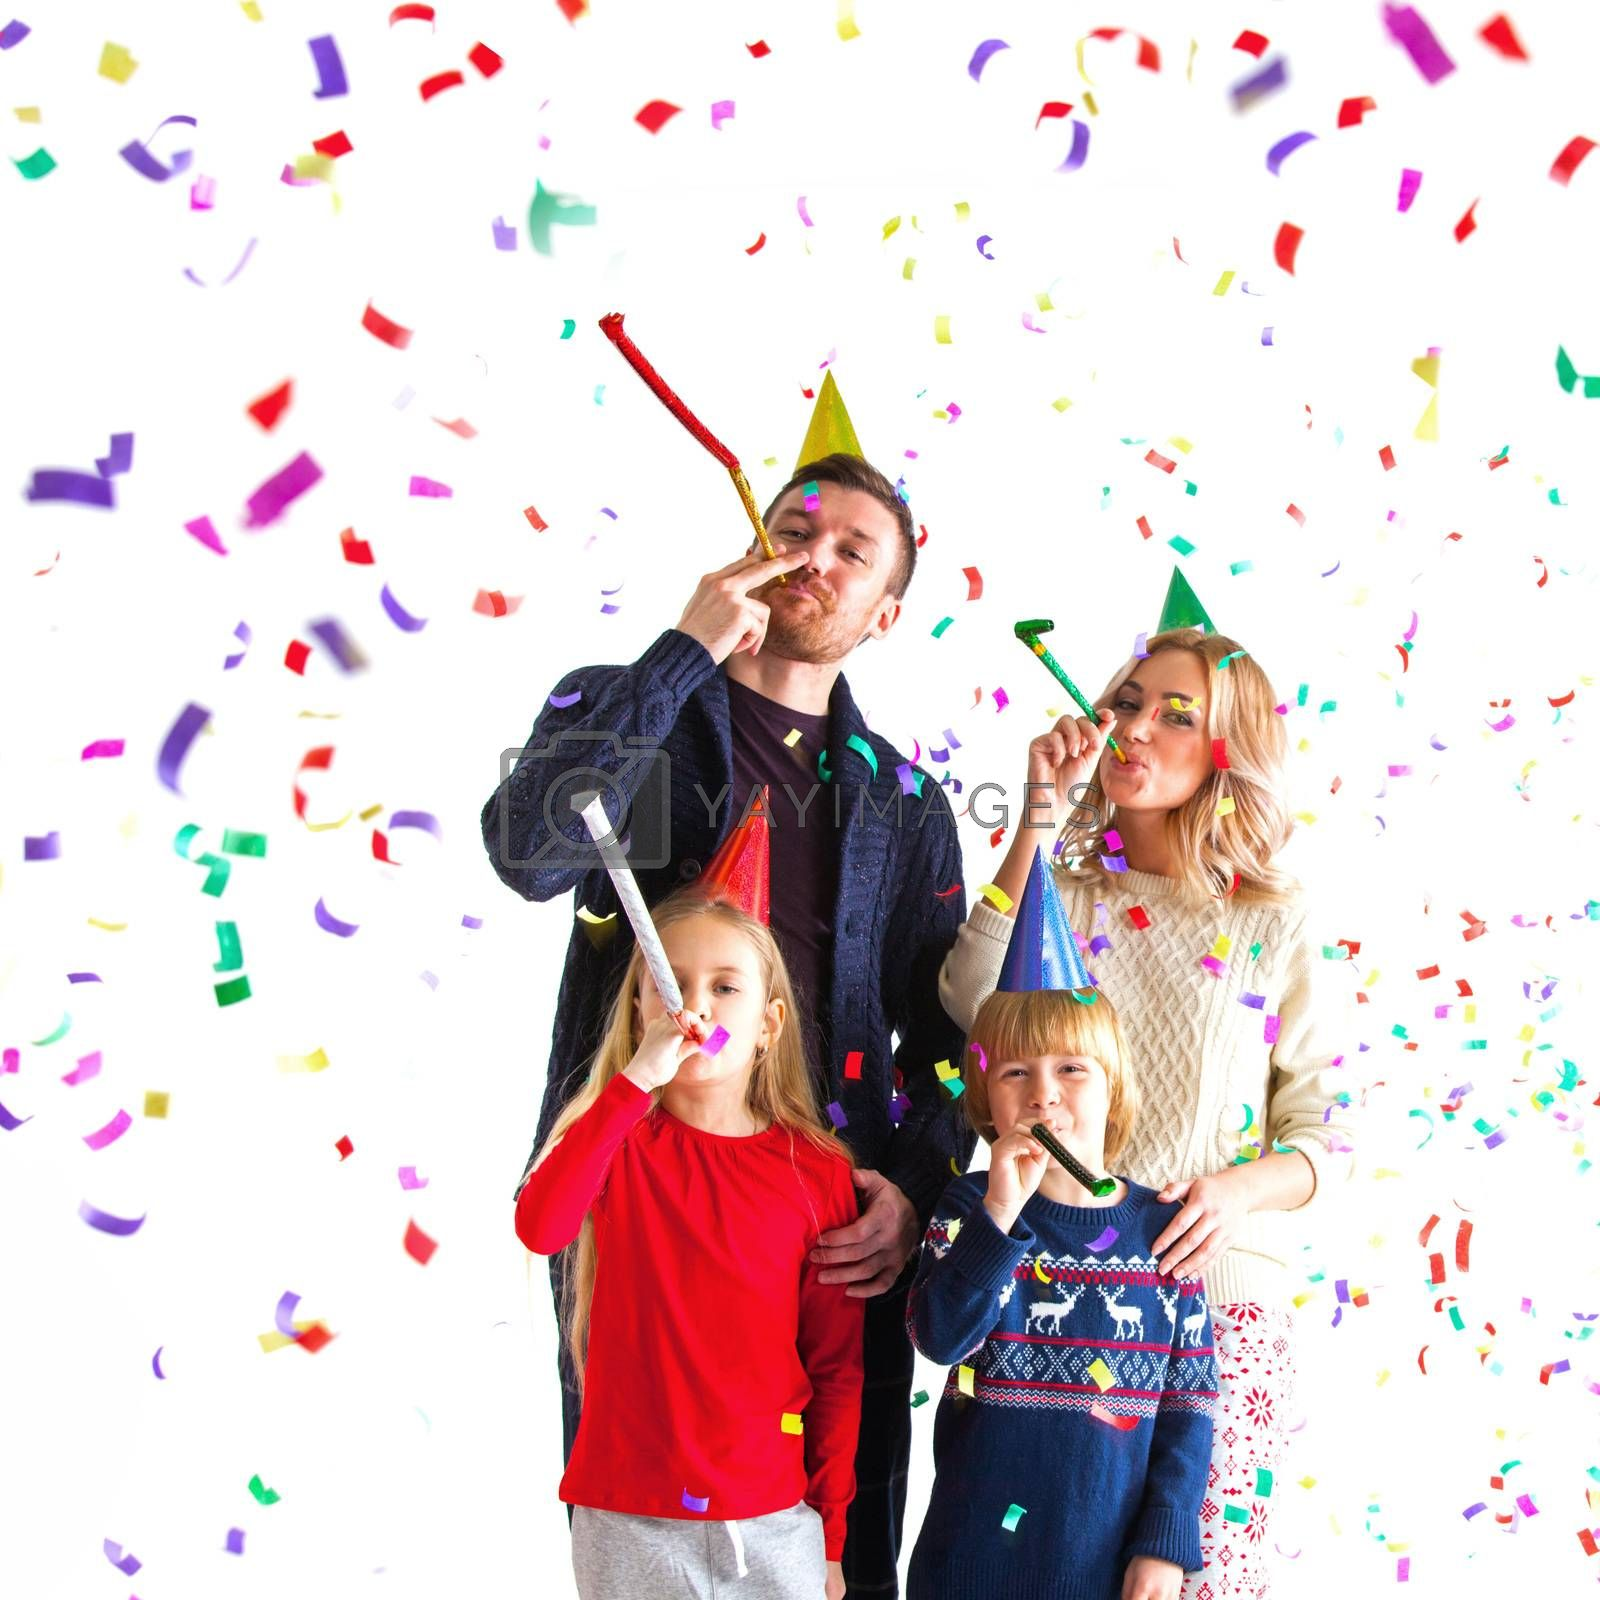 Family blowing party trumpets with confetti celebrating new year